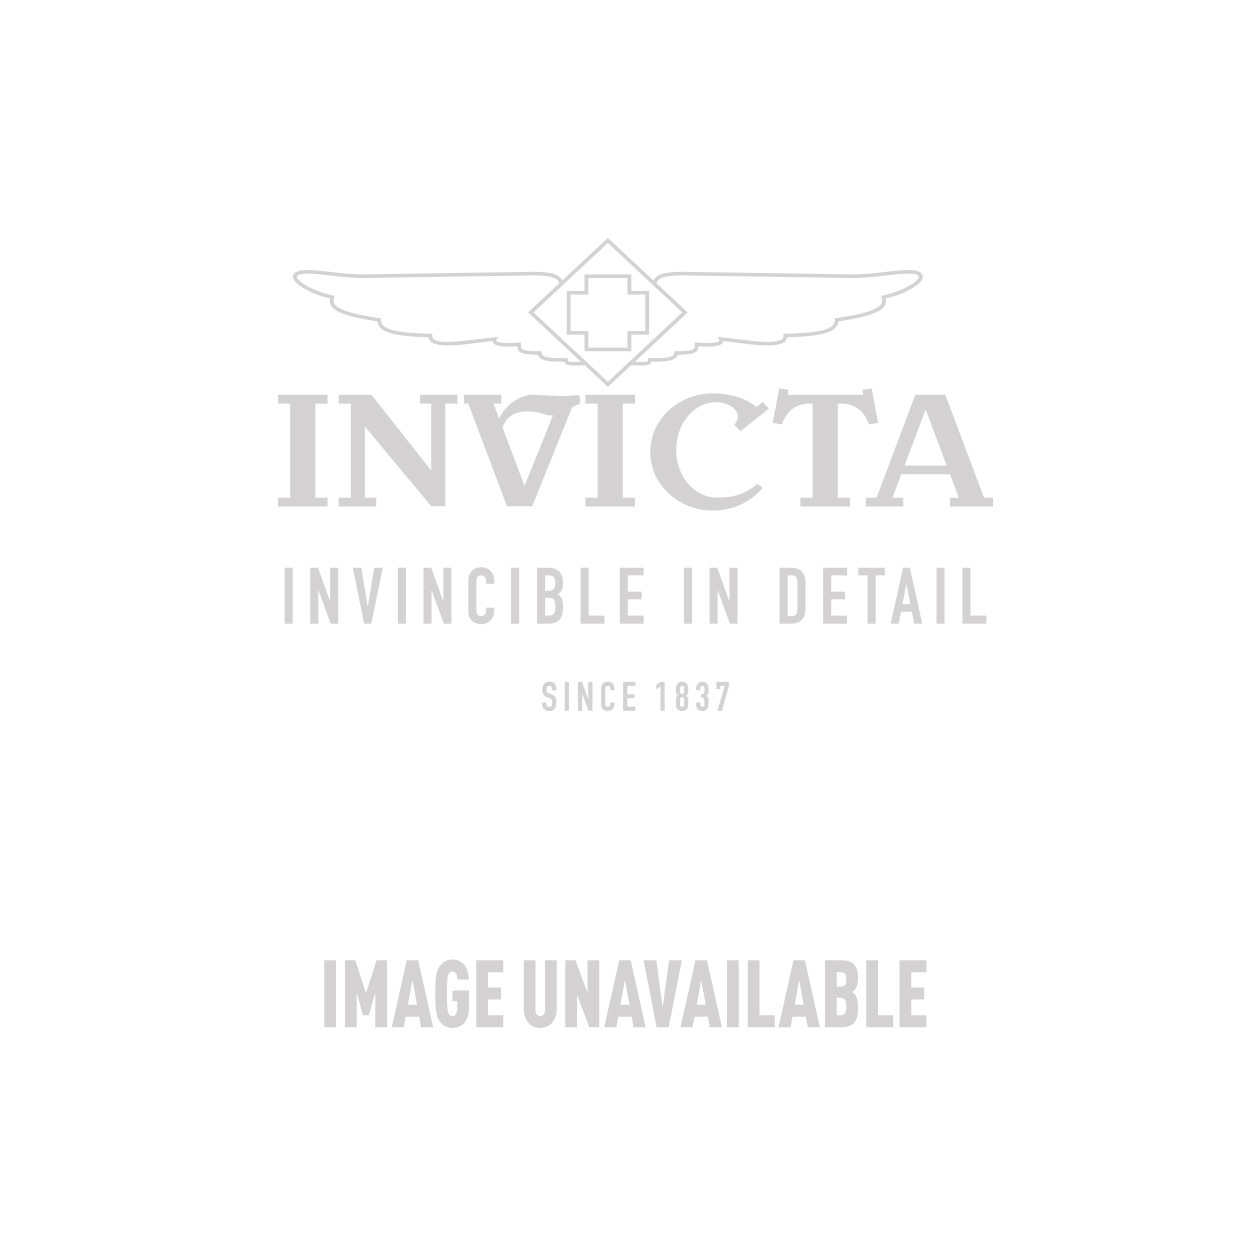 Invicta I-Force Quartz Watch - Gold, Stainless Steel case with Steel, Gold tone Stainless Steel band - Model 90163